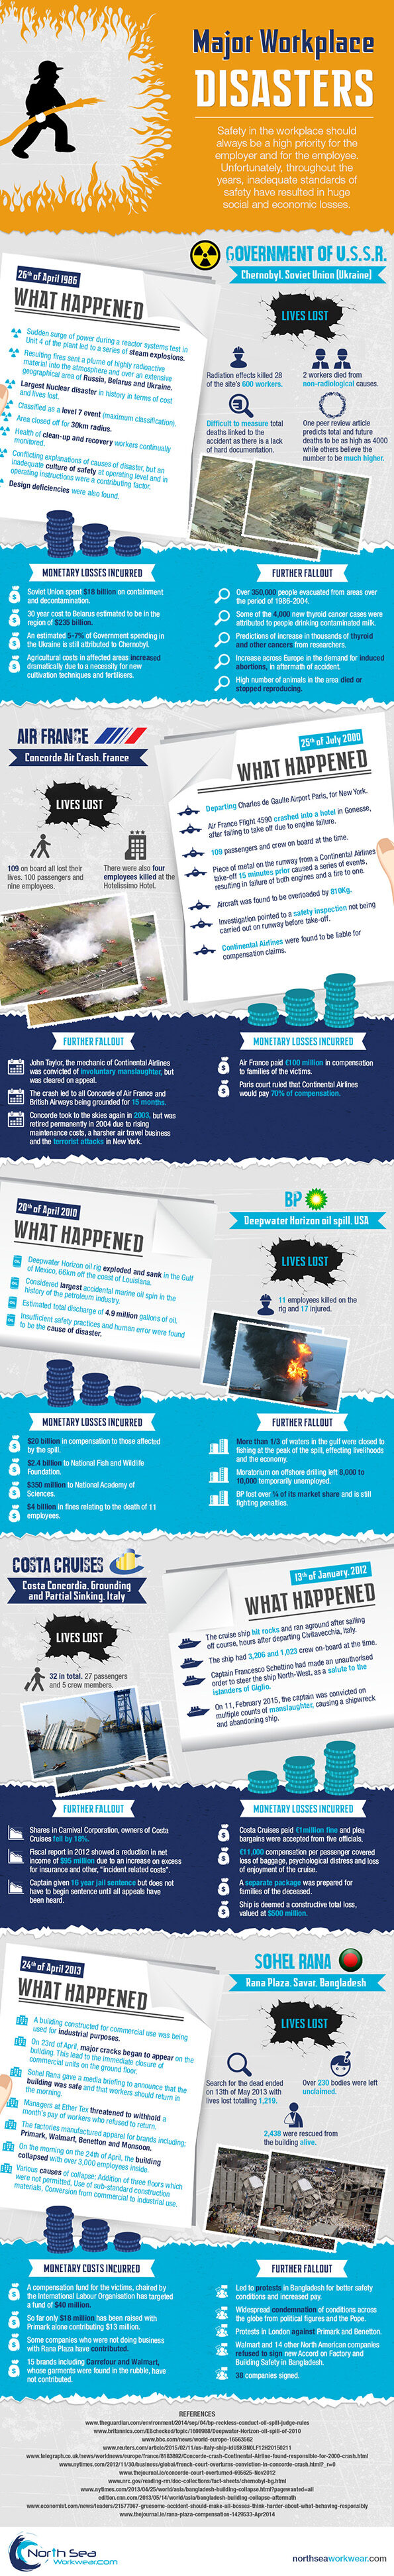 Infographic shows details of major workplace disasters